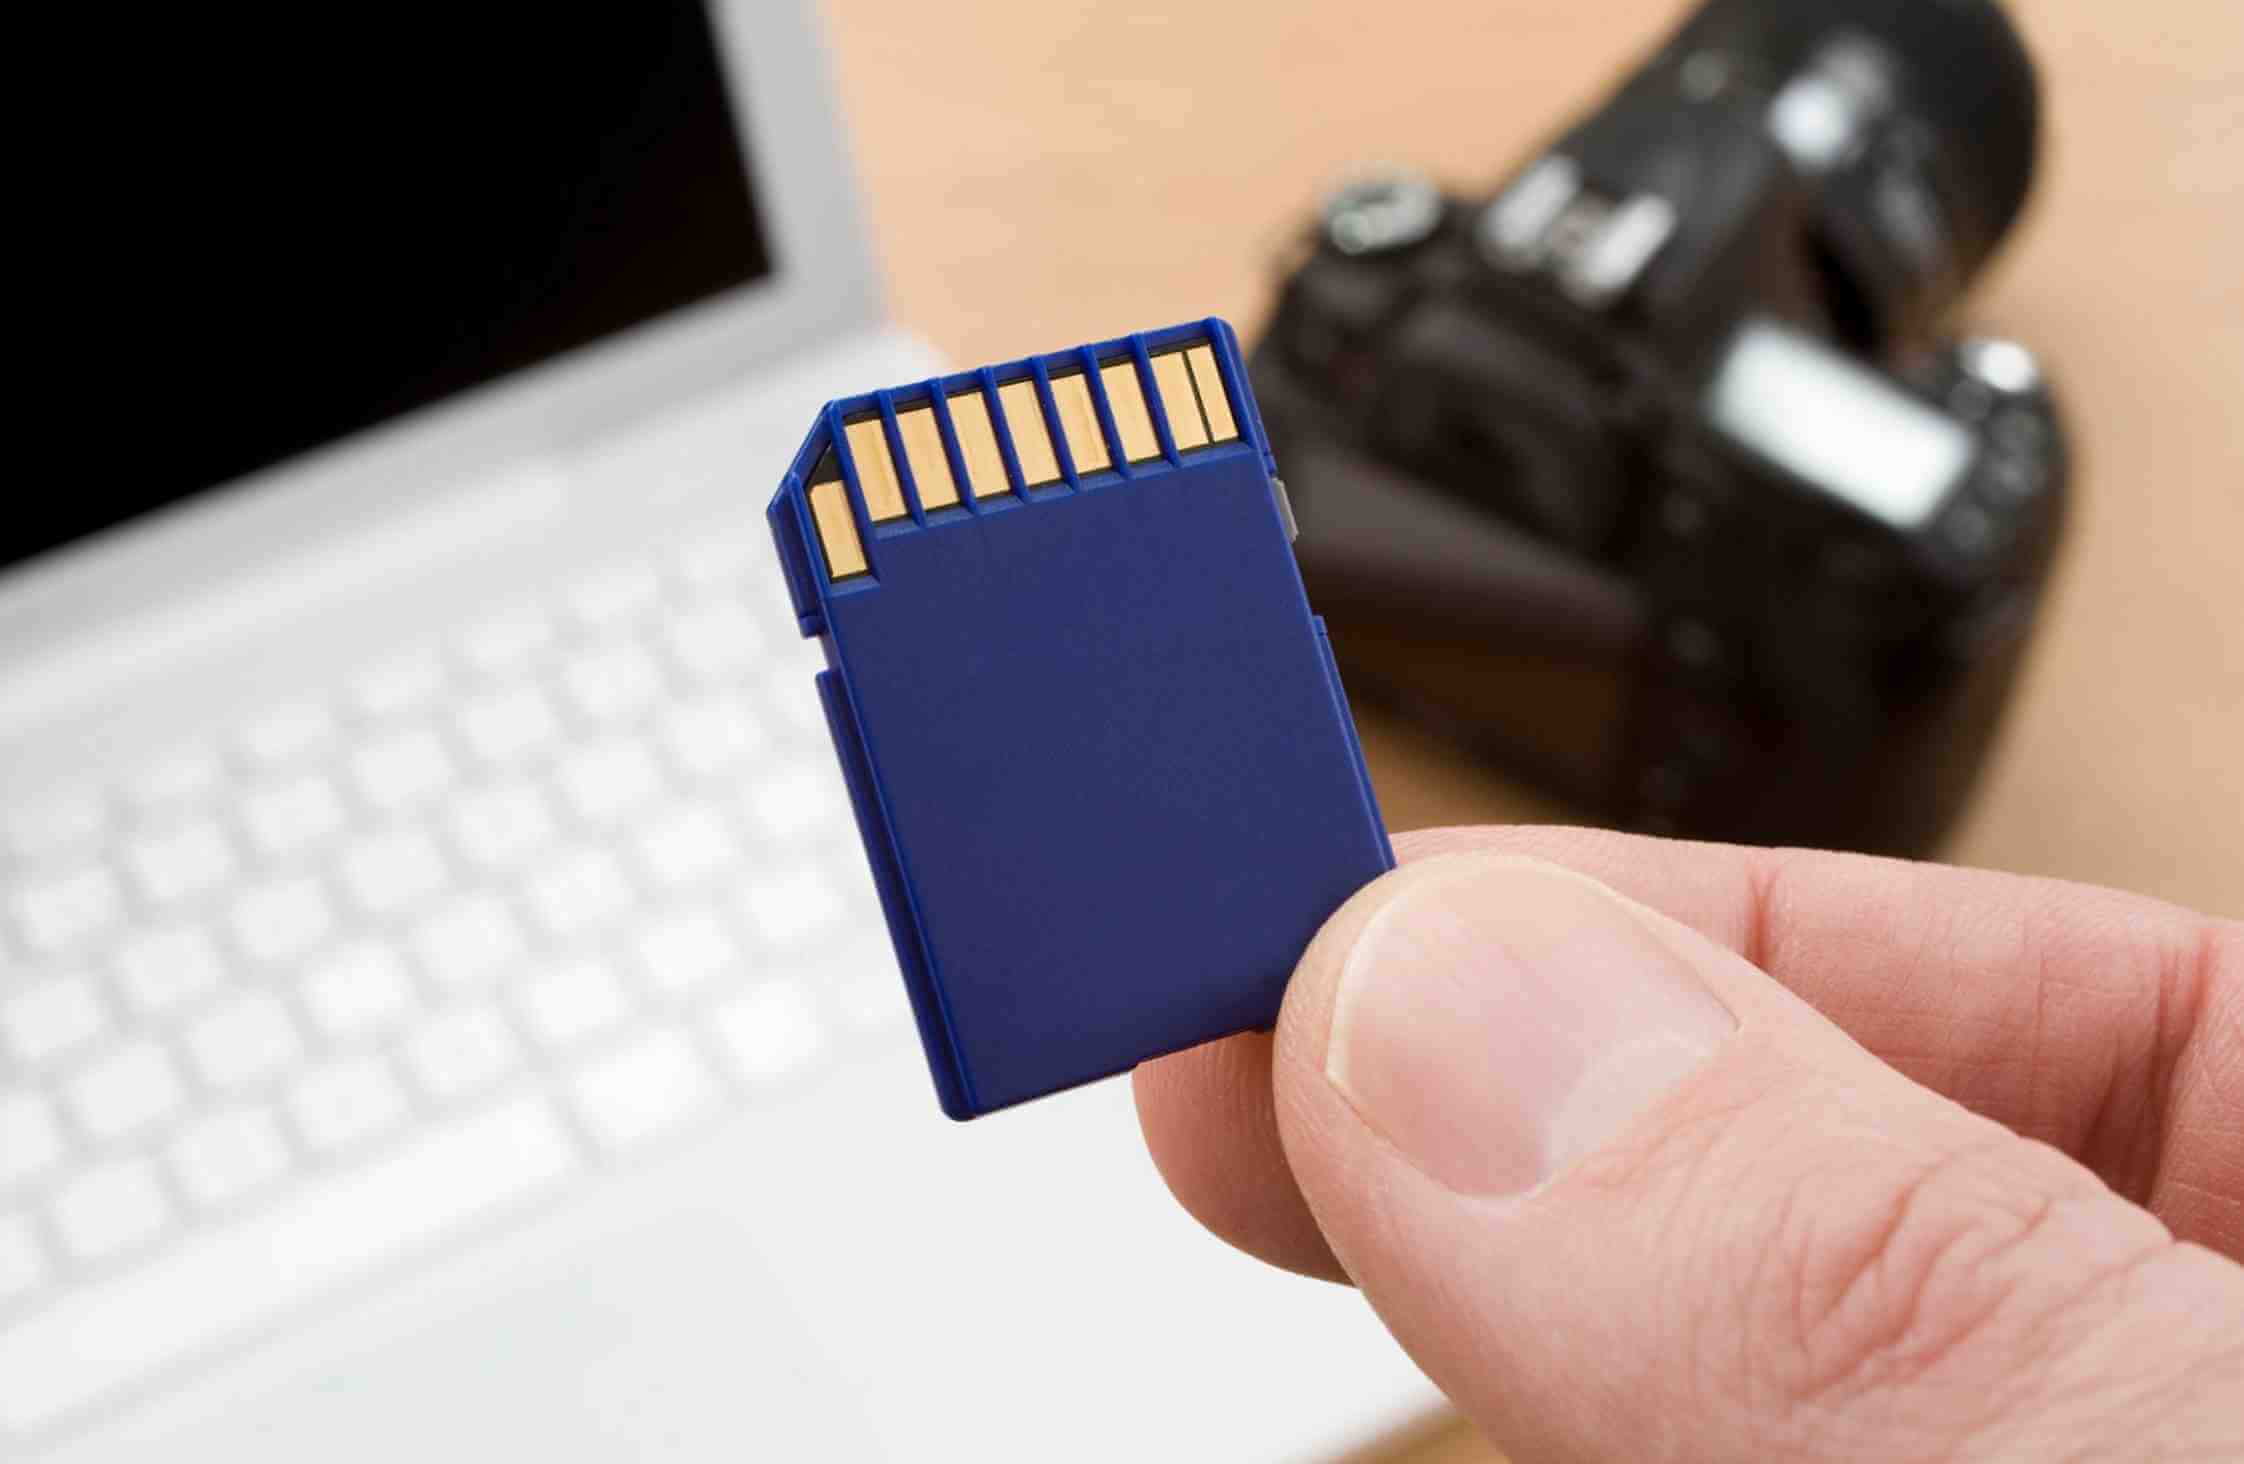 Troubleshooting SD Card Memory Card Problems on Macbook